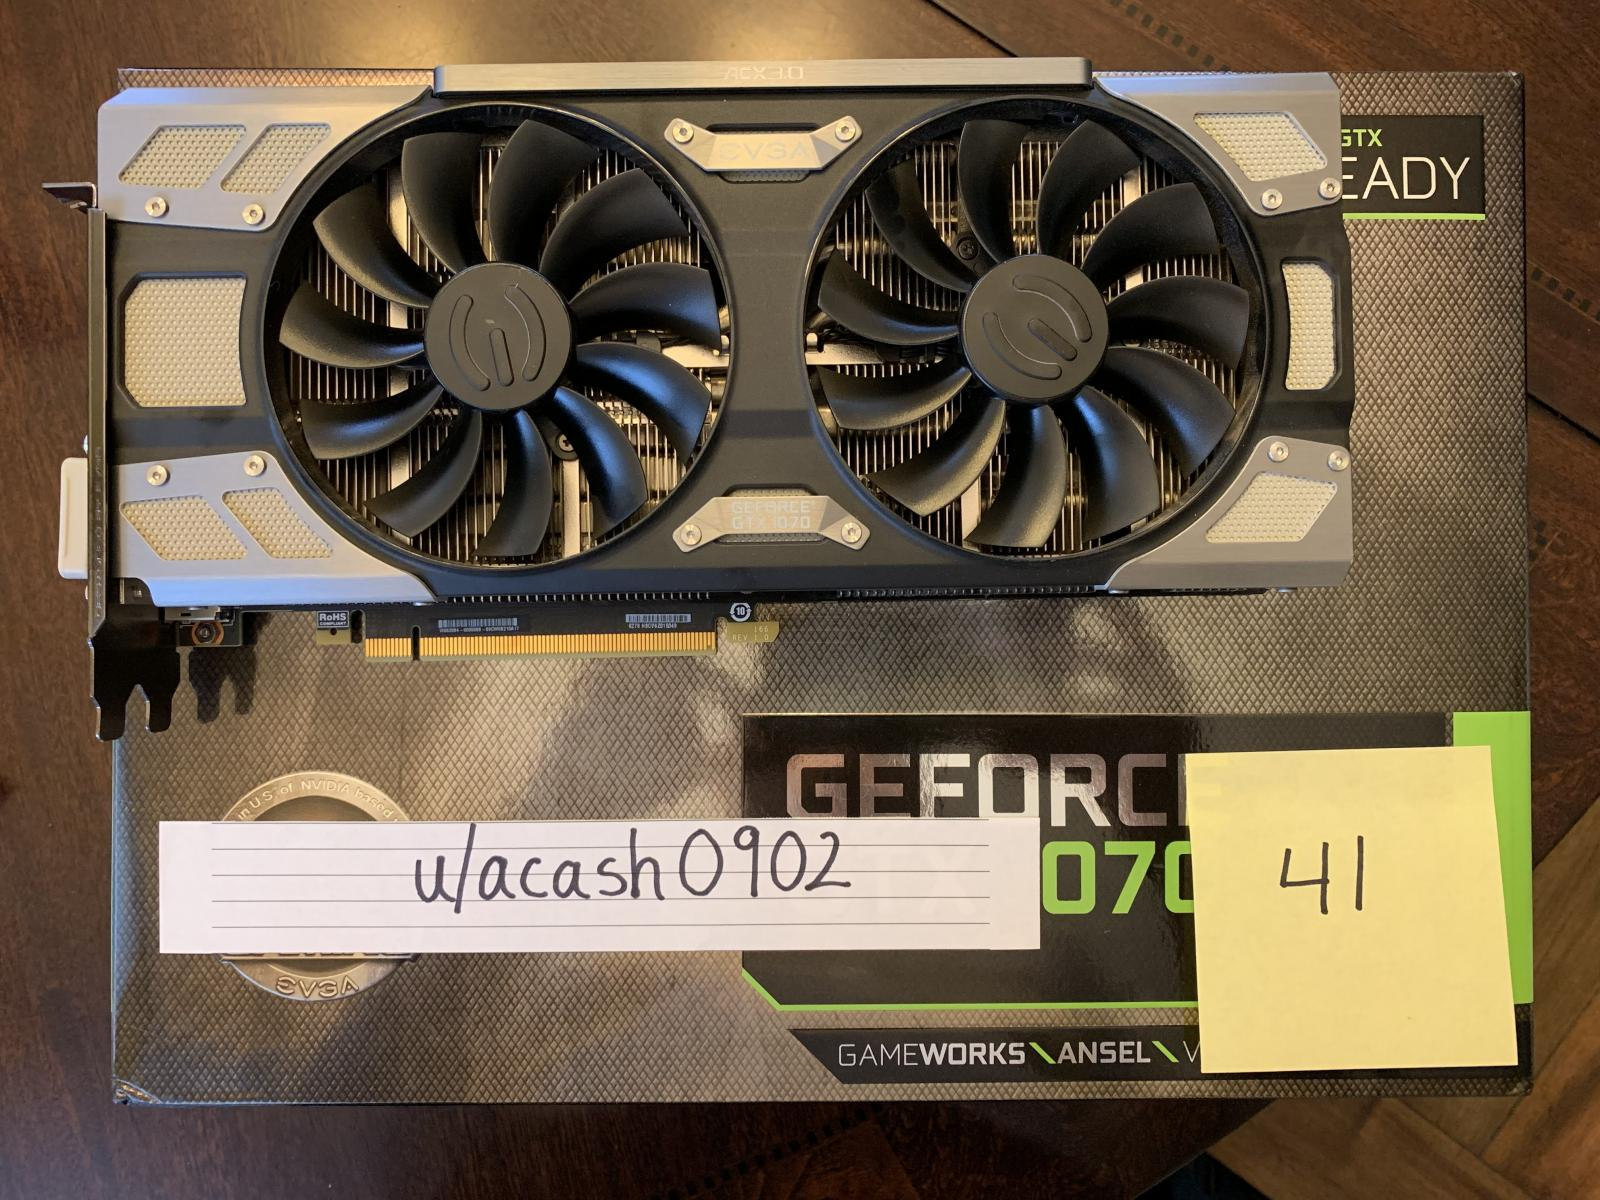 Photo of EVGA GeForce GTX 1070 FTW GAMING ACX 3.0, 08G-P4-6276-KR, 8GB GDDR5, ACX 3.0 & R